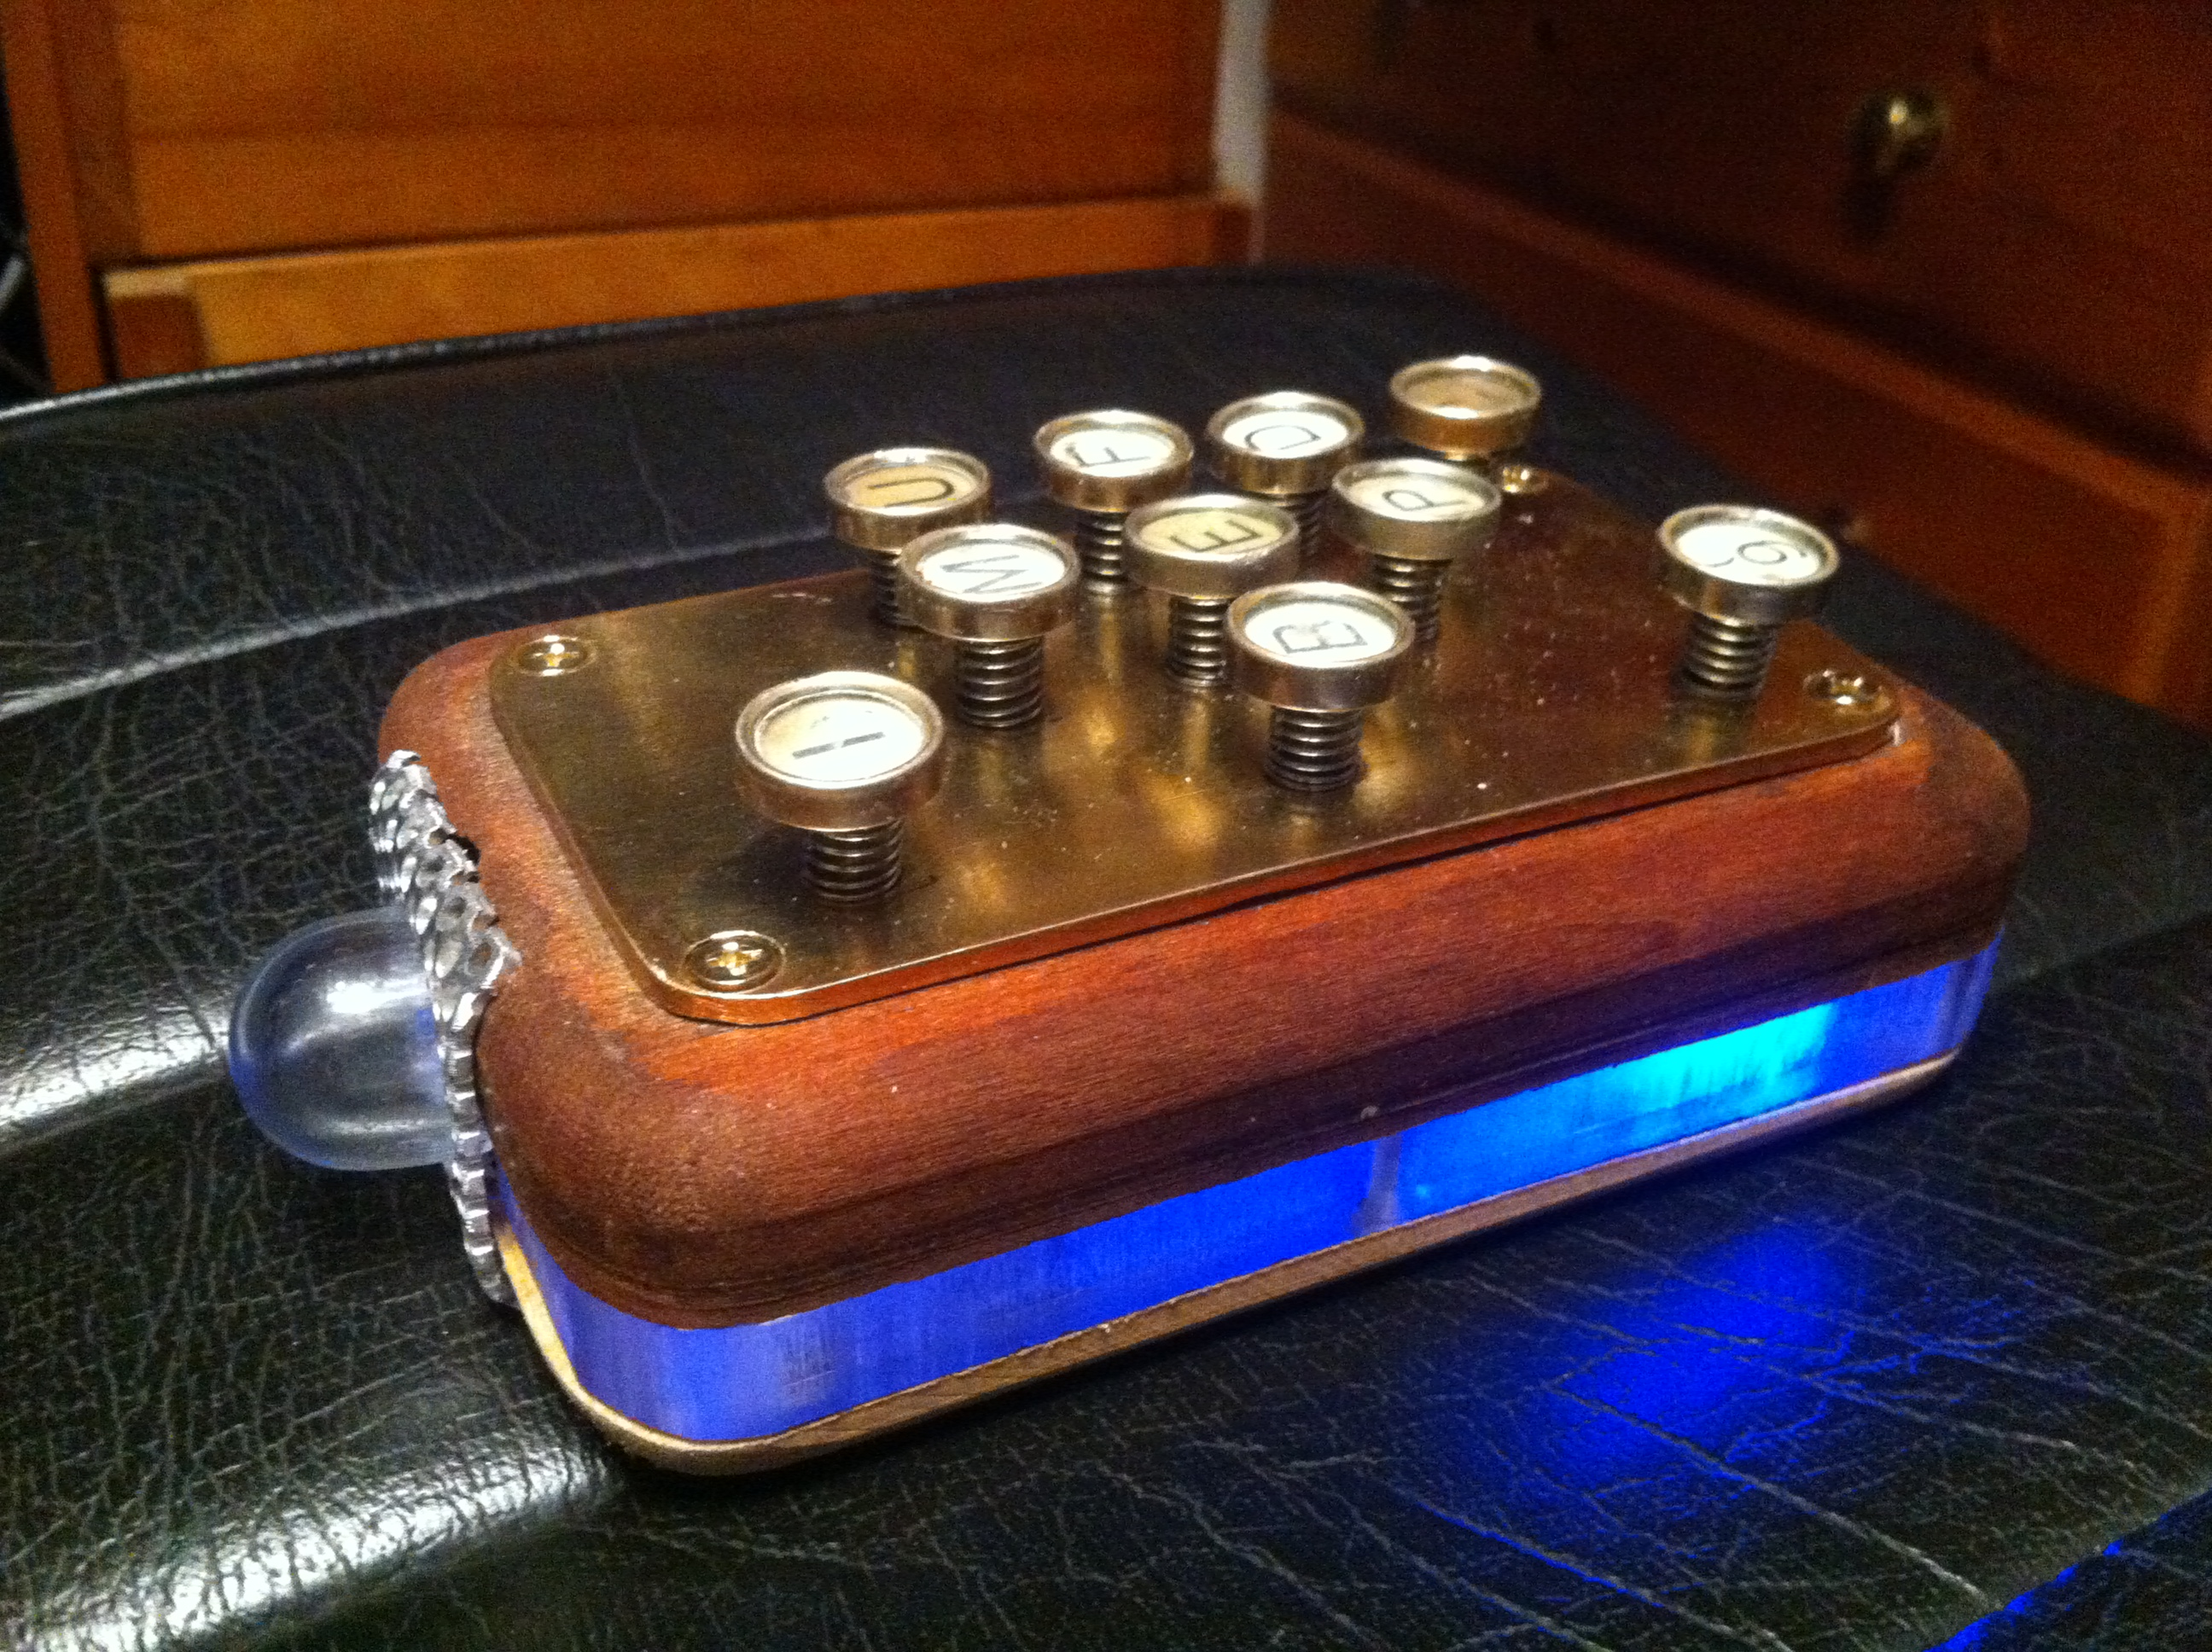 Picture of Steampunk Retro Remote Control (aka 'The Brick')